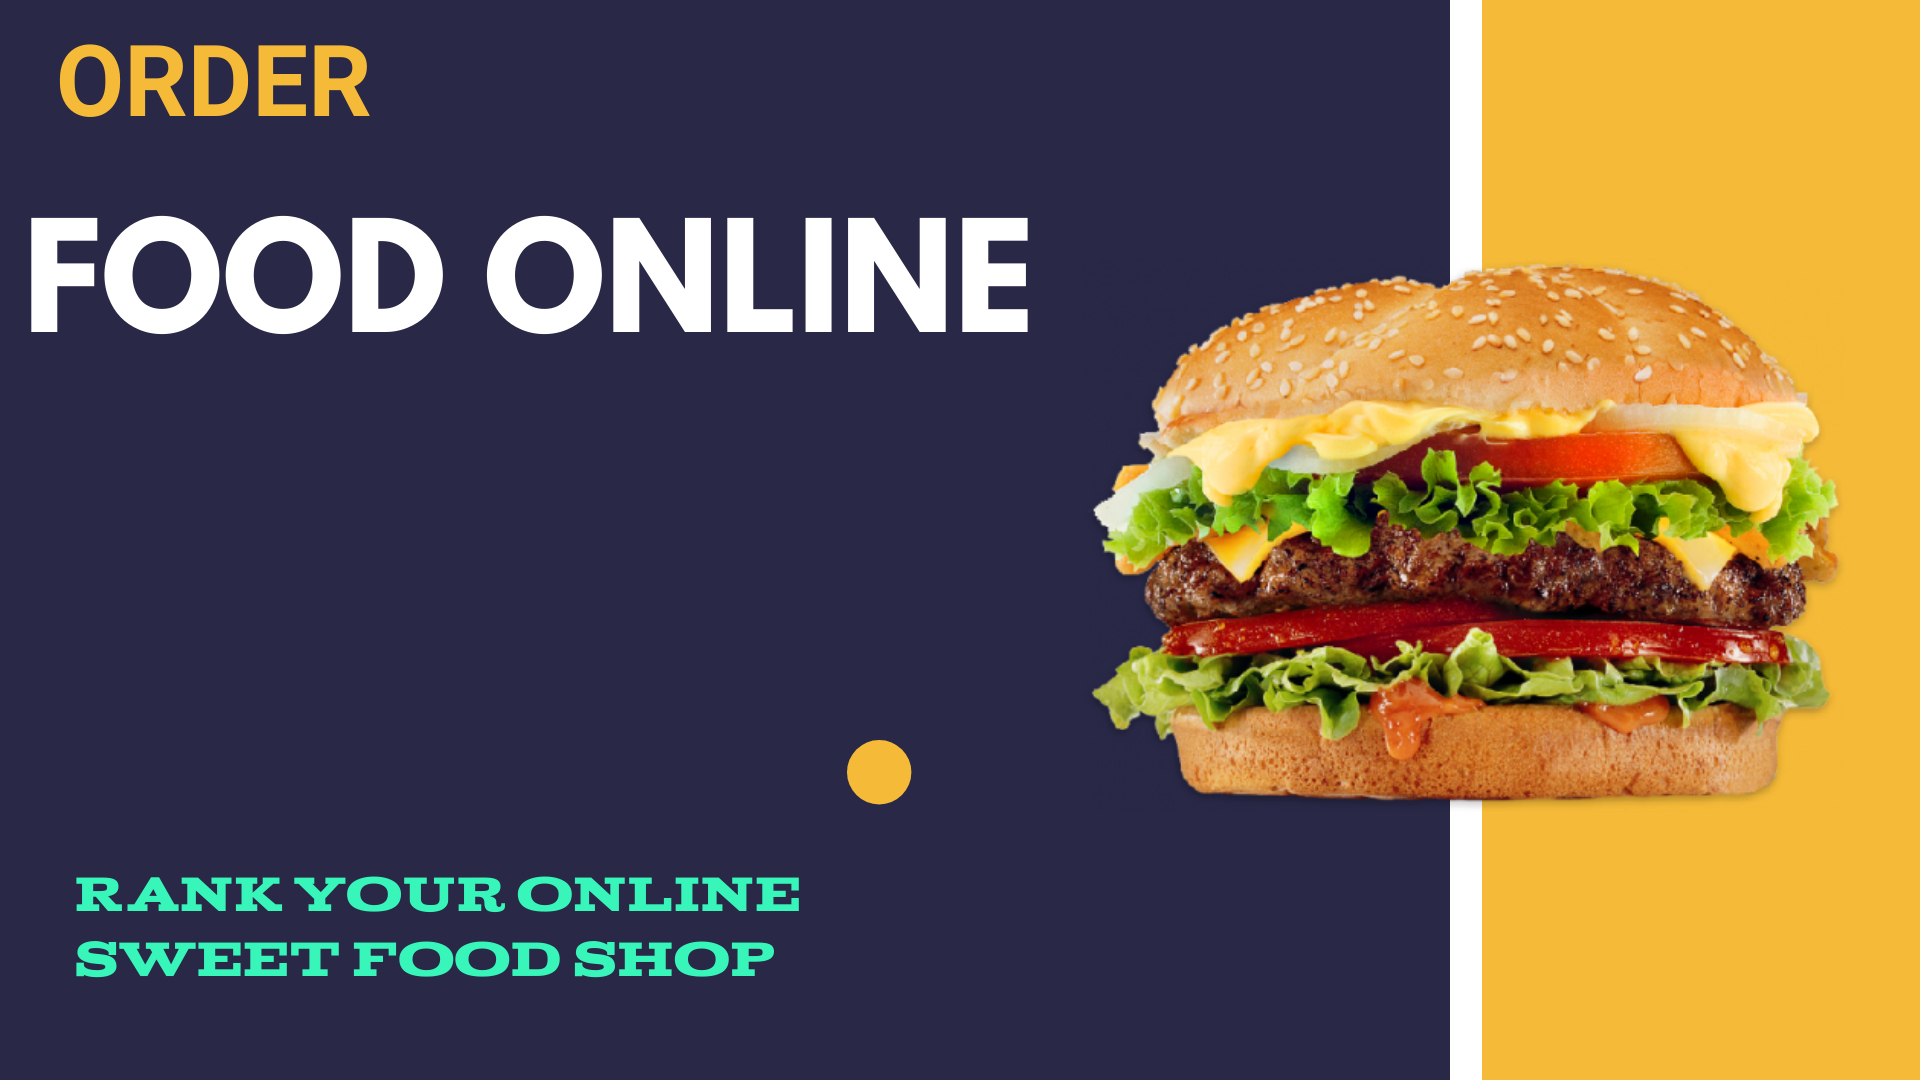 Top Service online Ranking your website Sweet Food Shop First Page On Google Homepage 8,000 Backlink